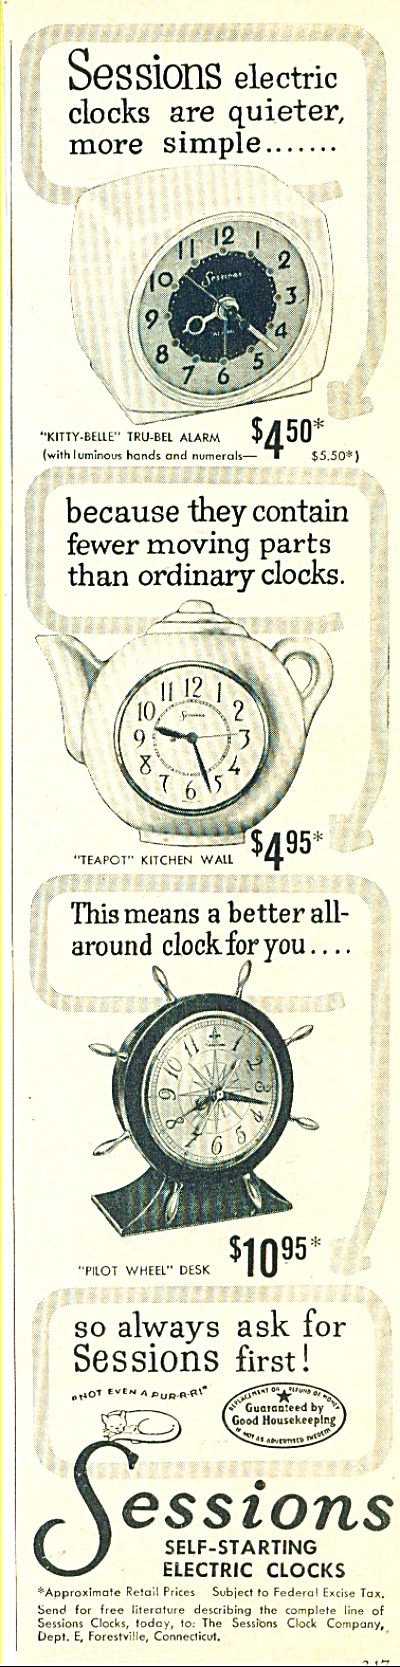 Sessions electric clocks ad (Image1)